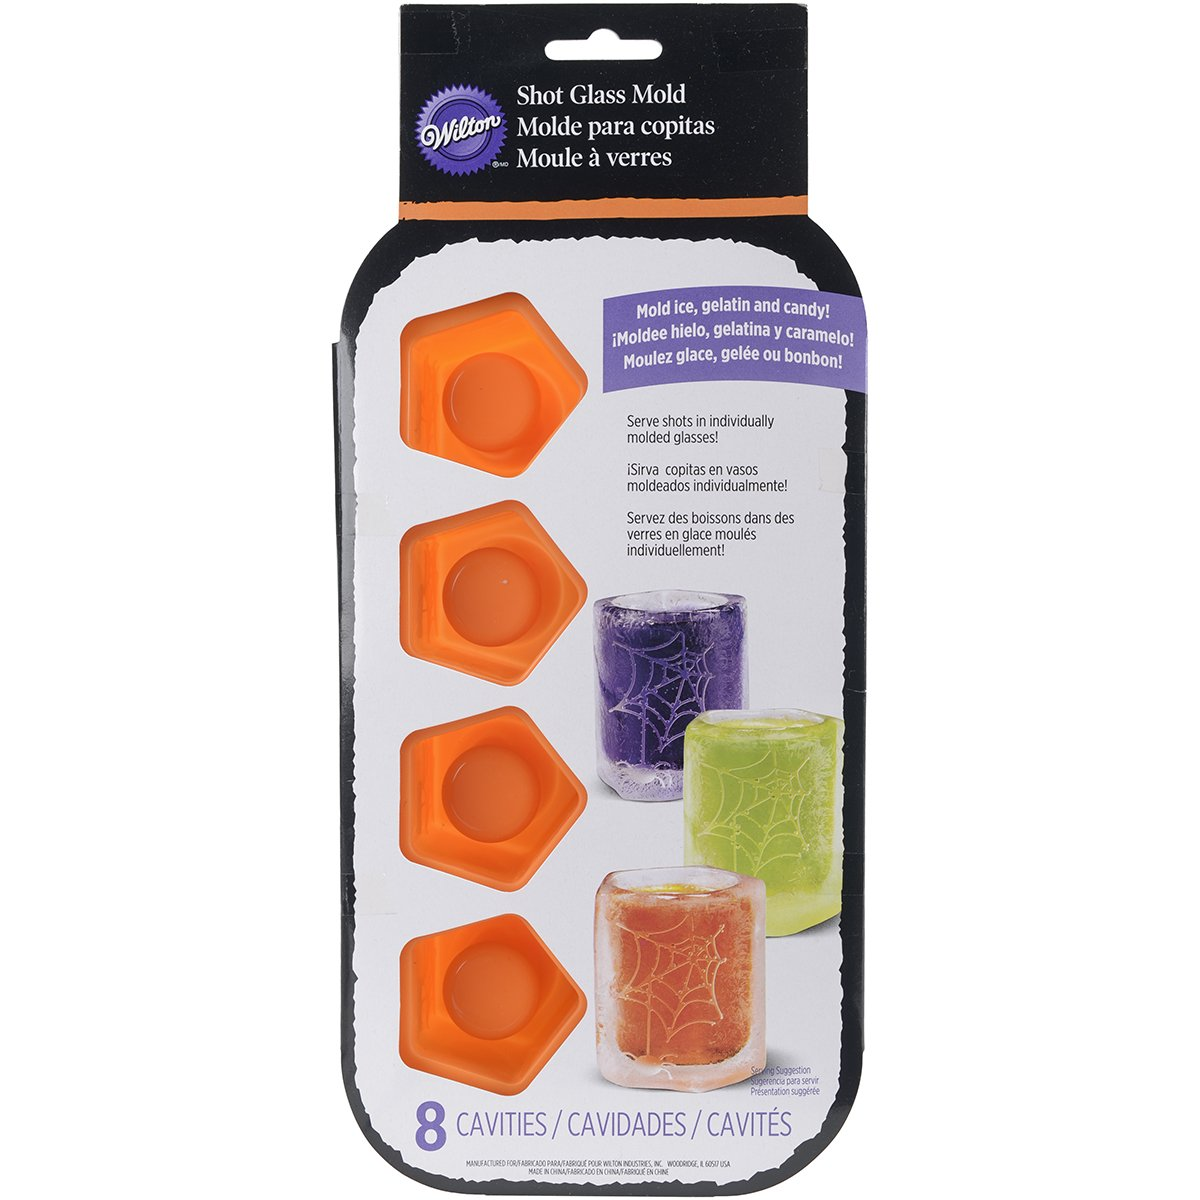 Amazon.com: Wilton 2105-4633 8 Cavity Spiderweb Silicone Shot Mold, Orange: Kitchen & Dining